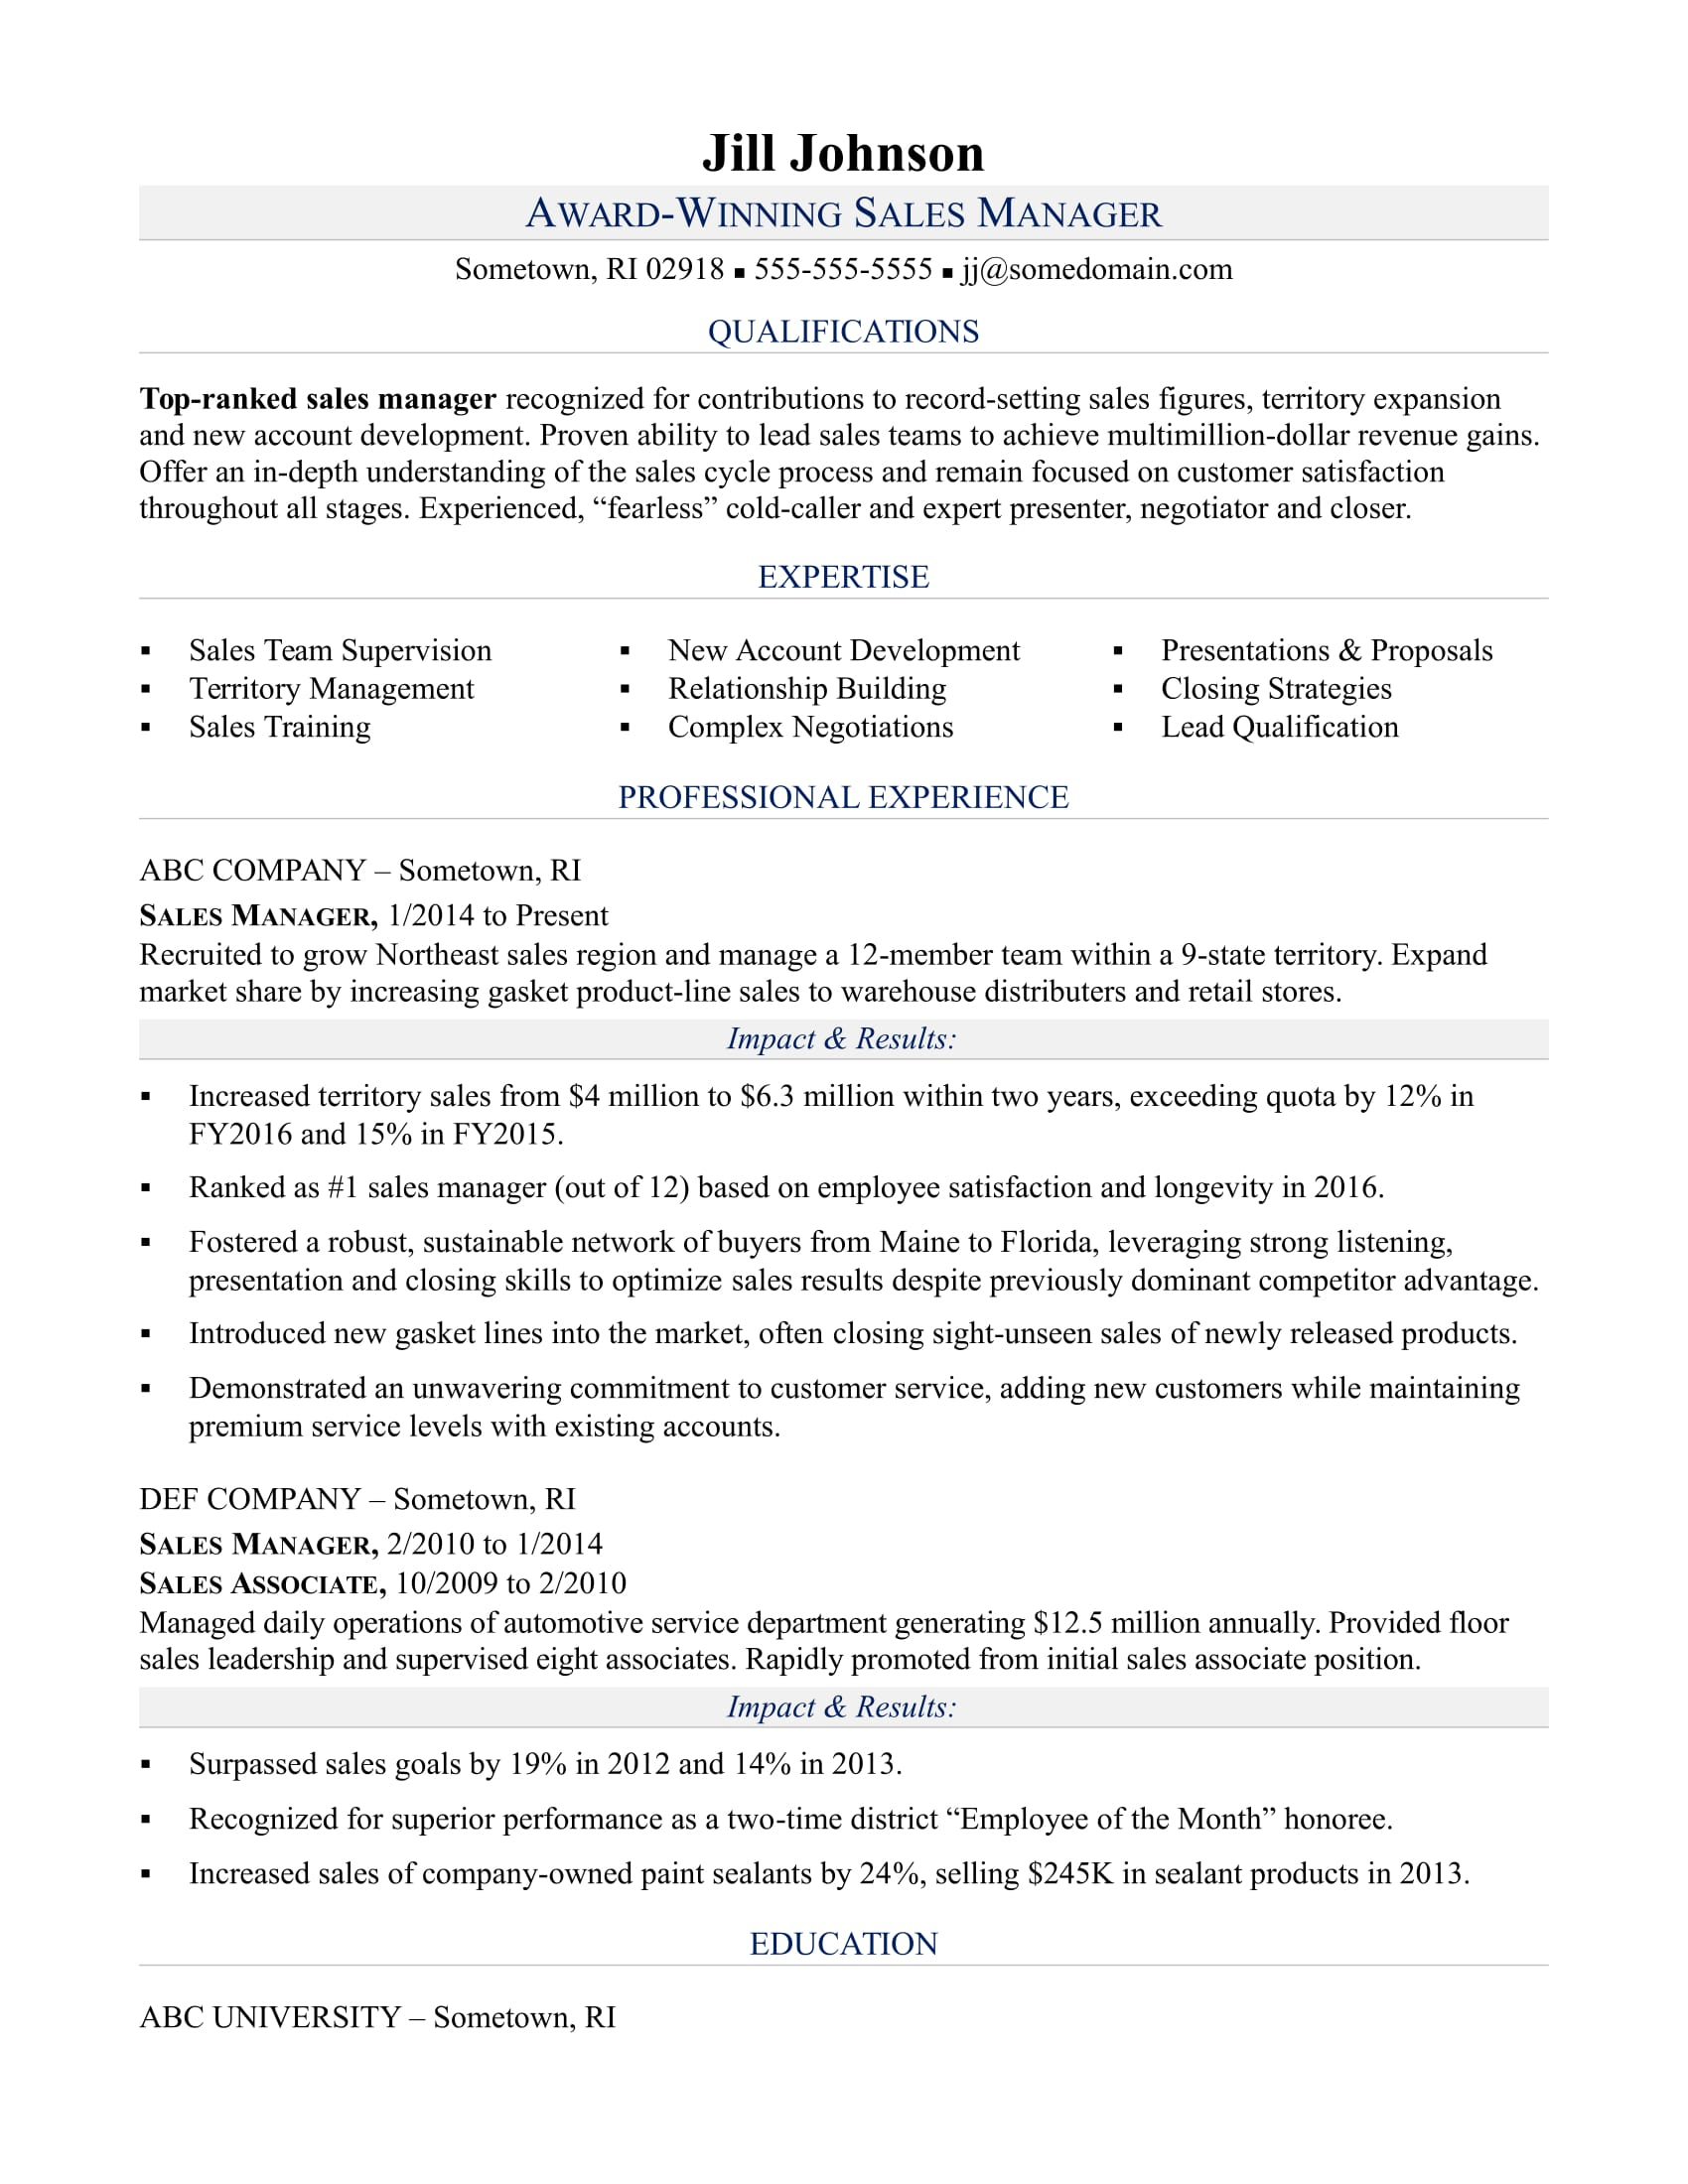 Sample Resume For A Sales Manager  District Sales Manager Resume